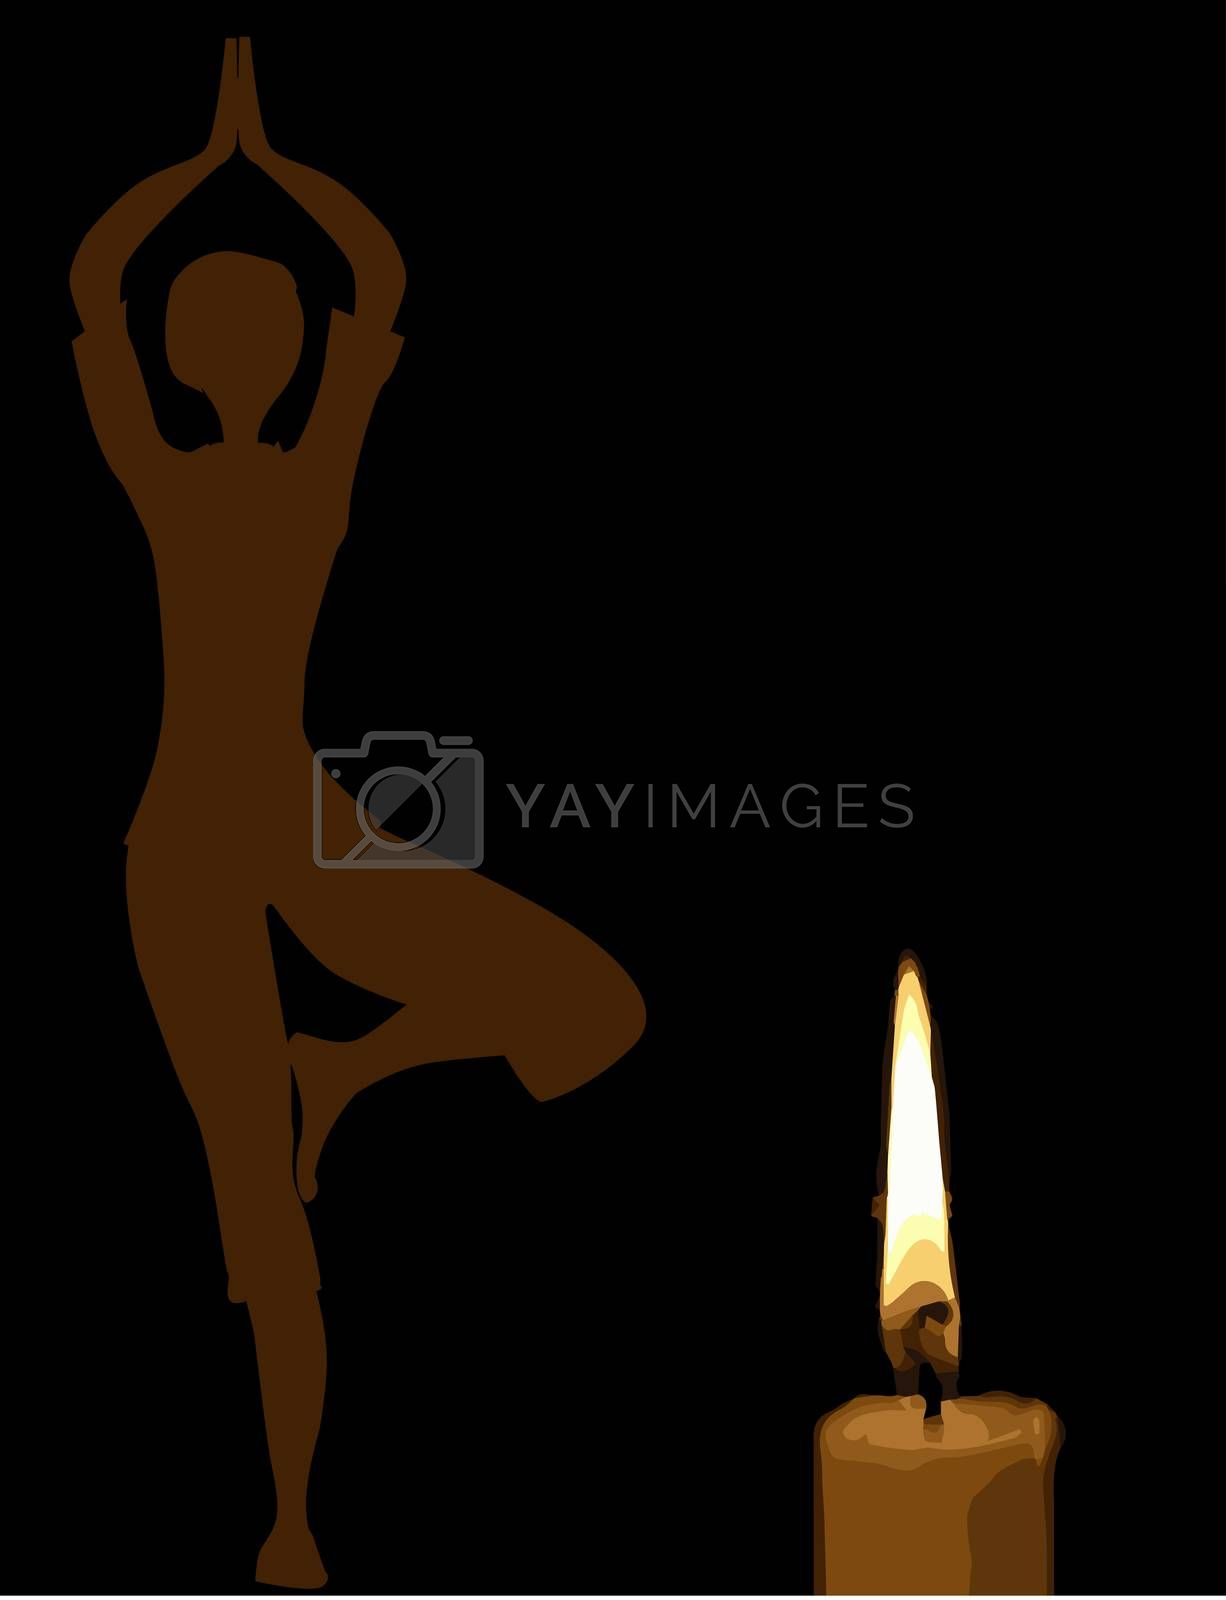 A yoga practitioner behind a flickering candle